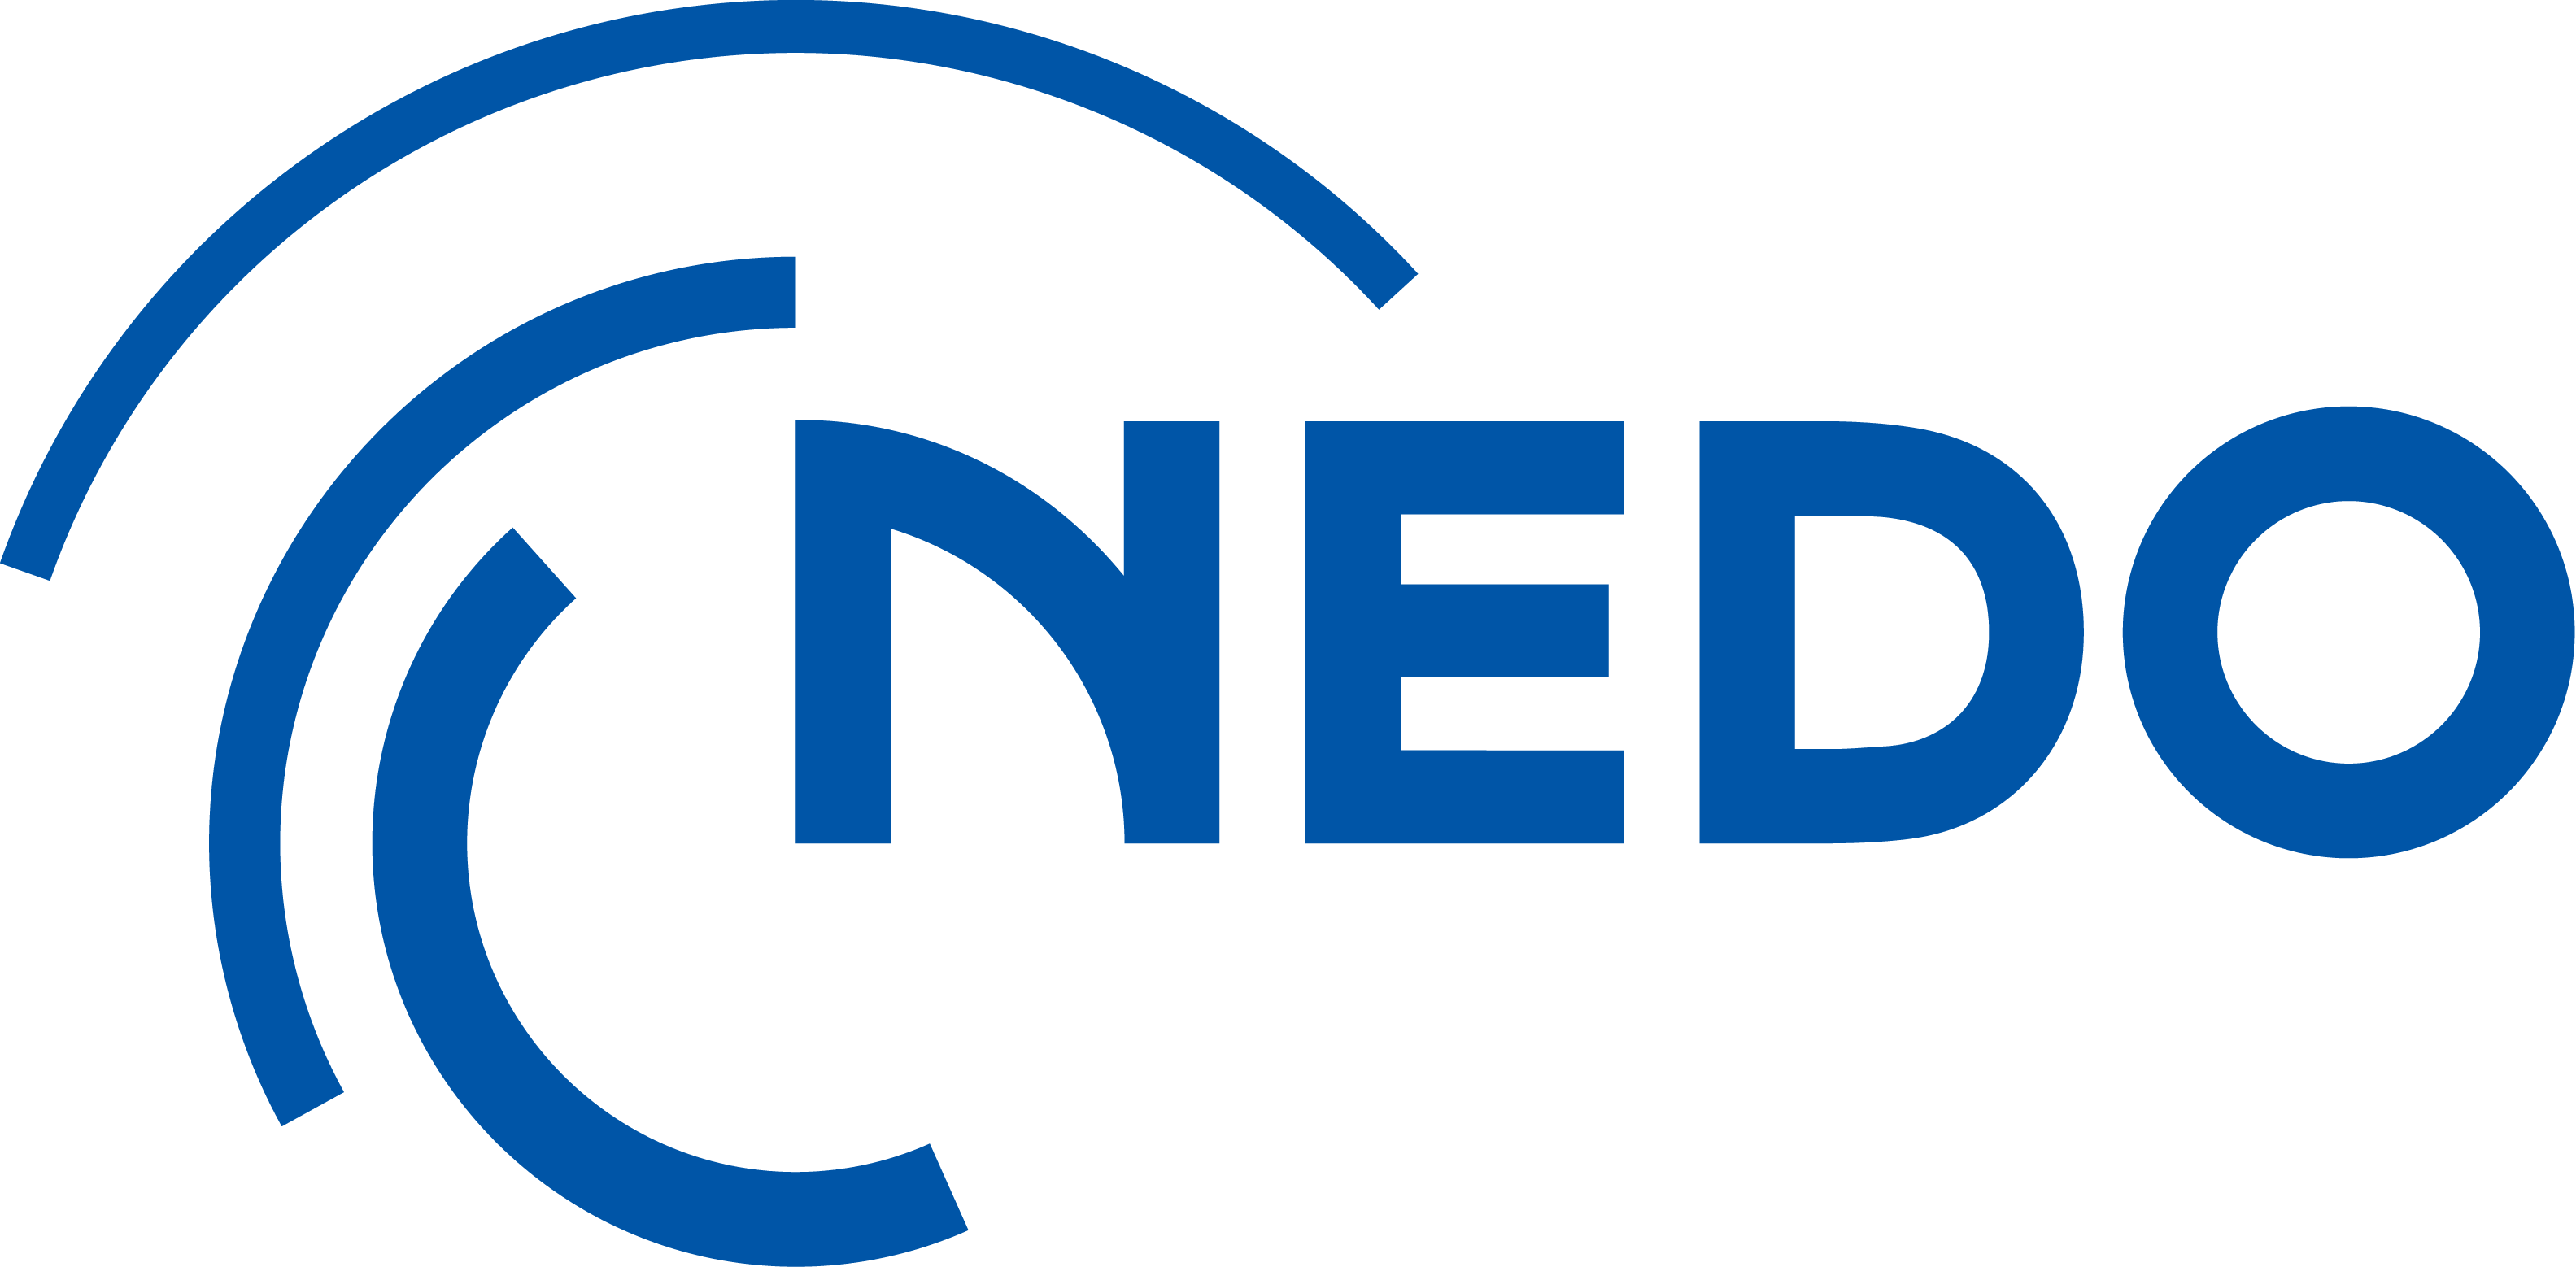 New Energy and Industrial Technology Development Organisation